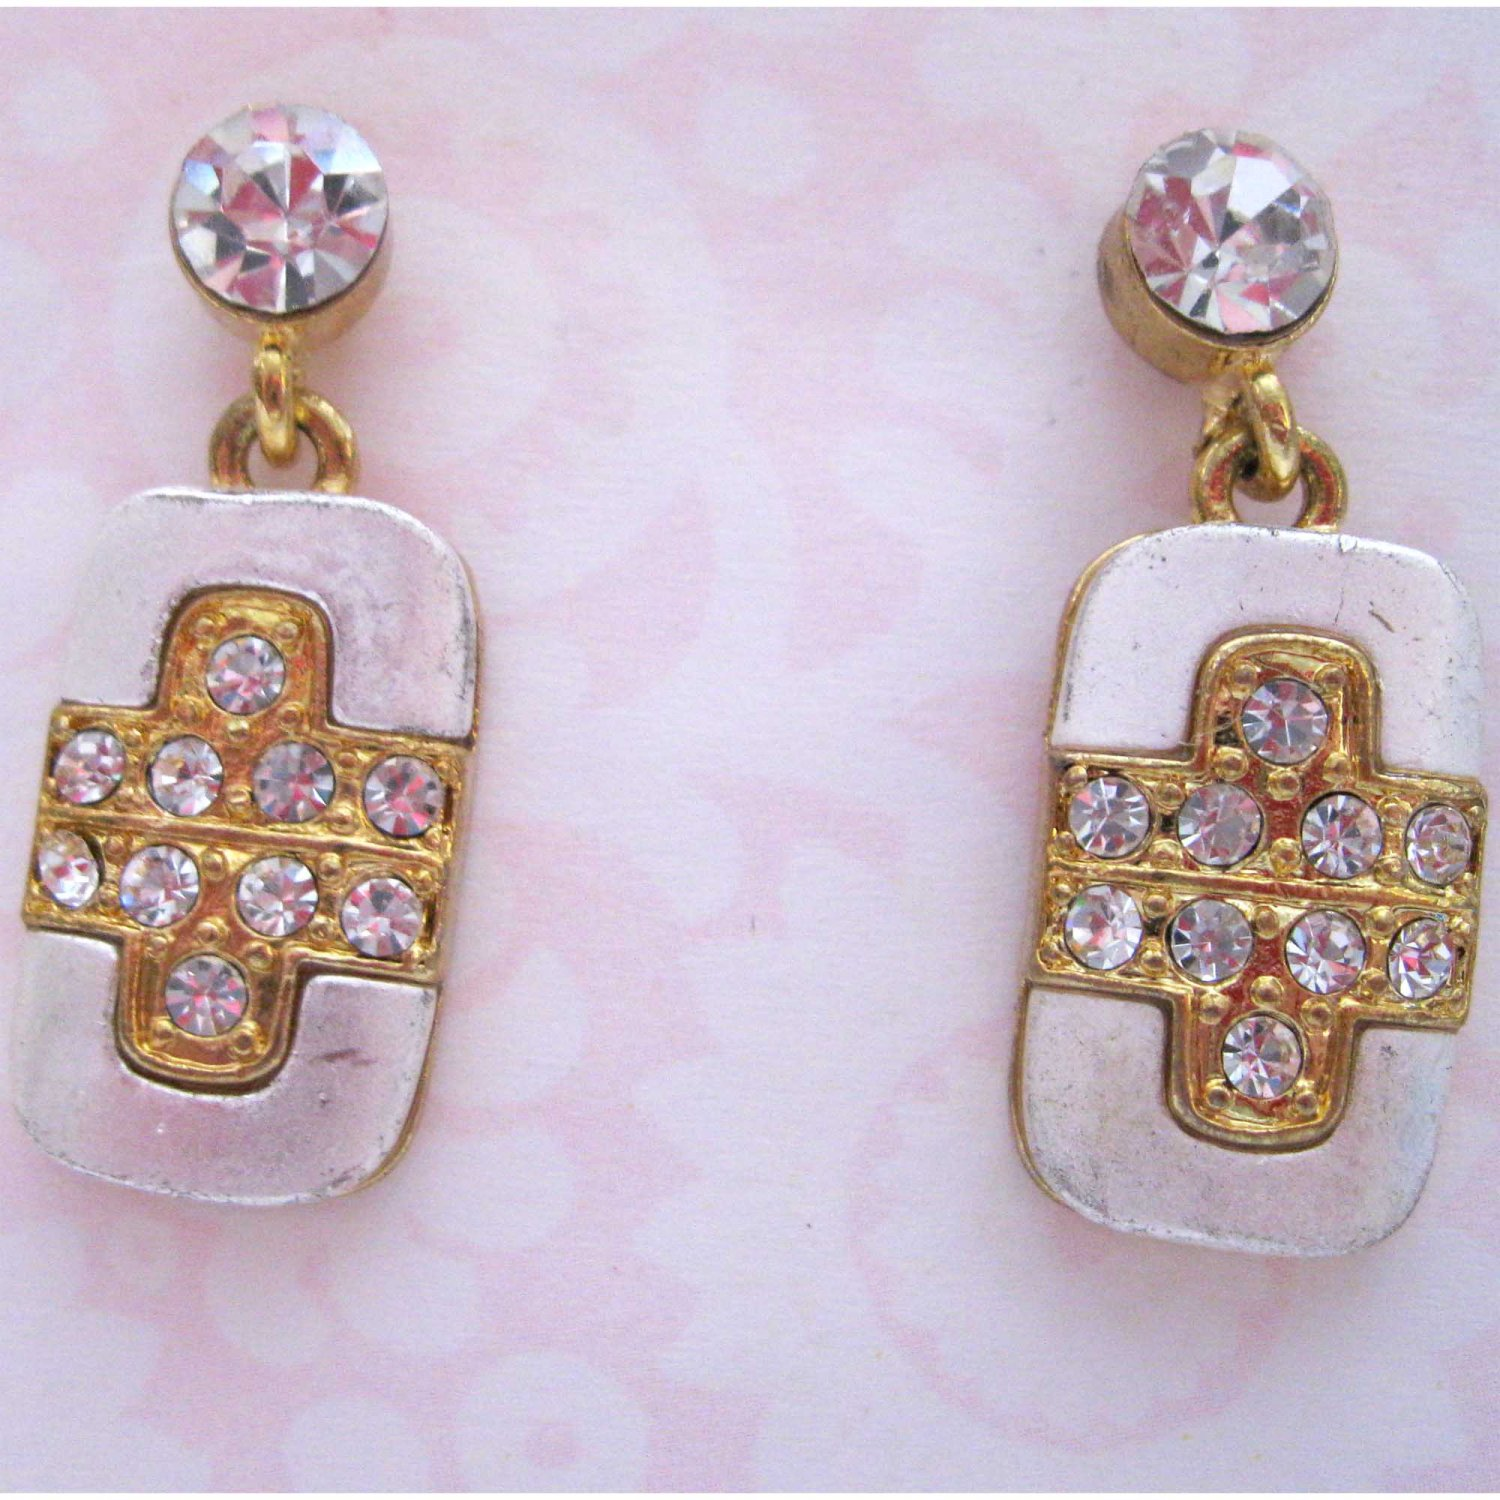 Silver and gold cross earrings with white crystals